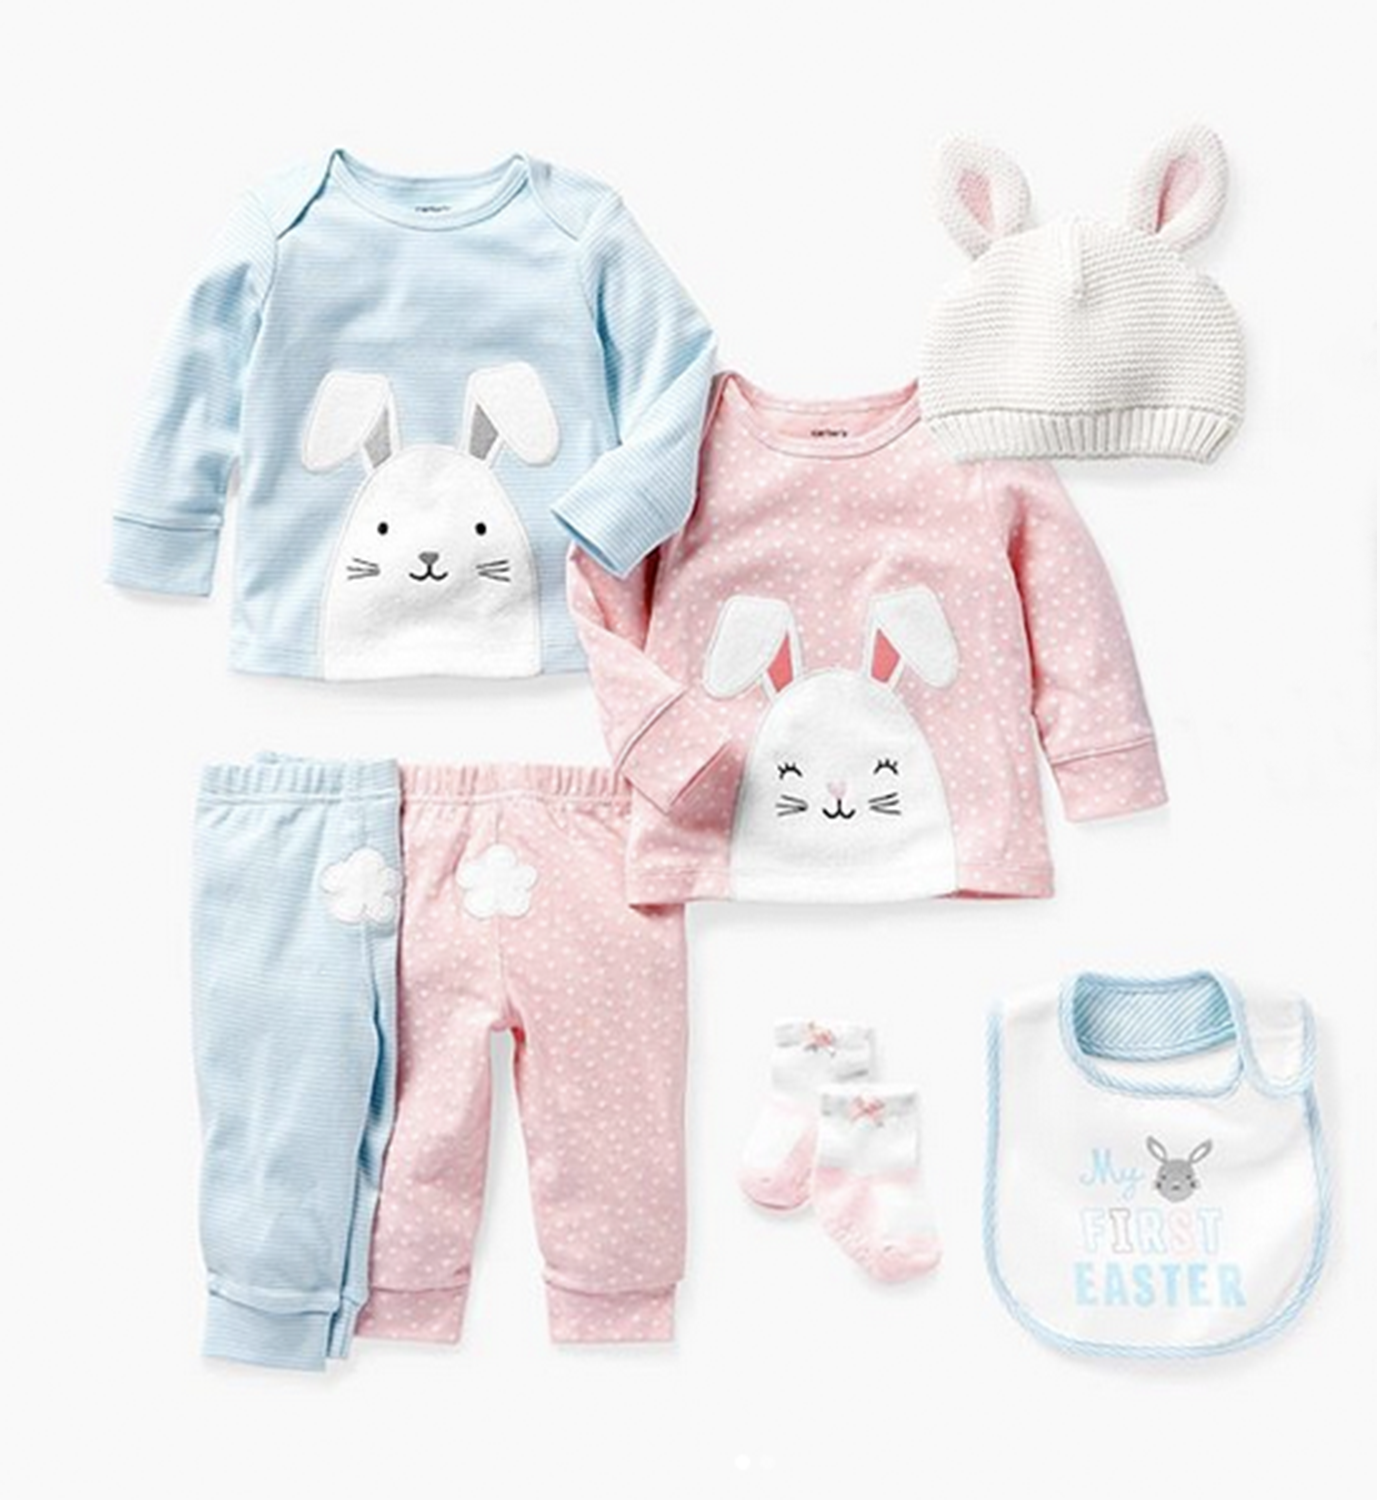 Carter's Baby Outfits for Easter